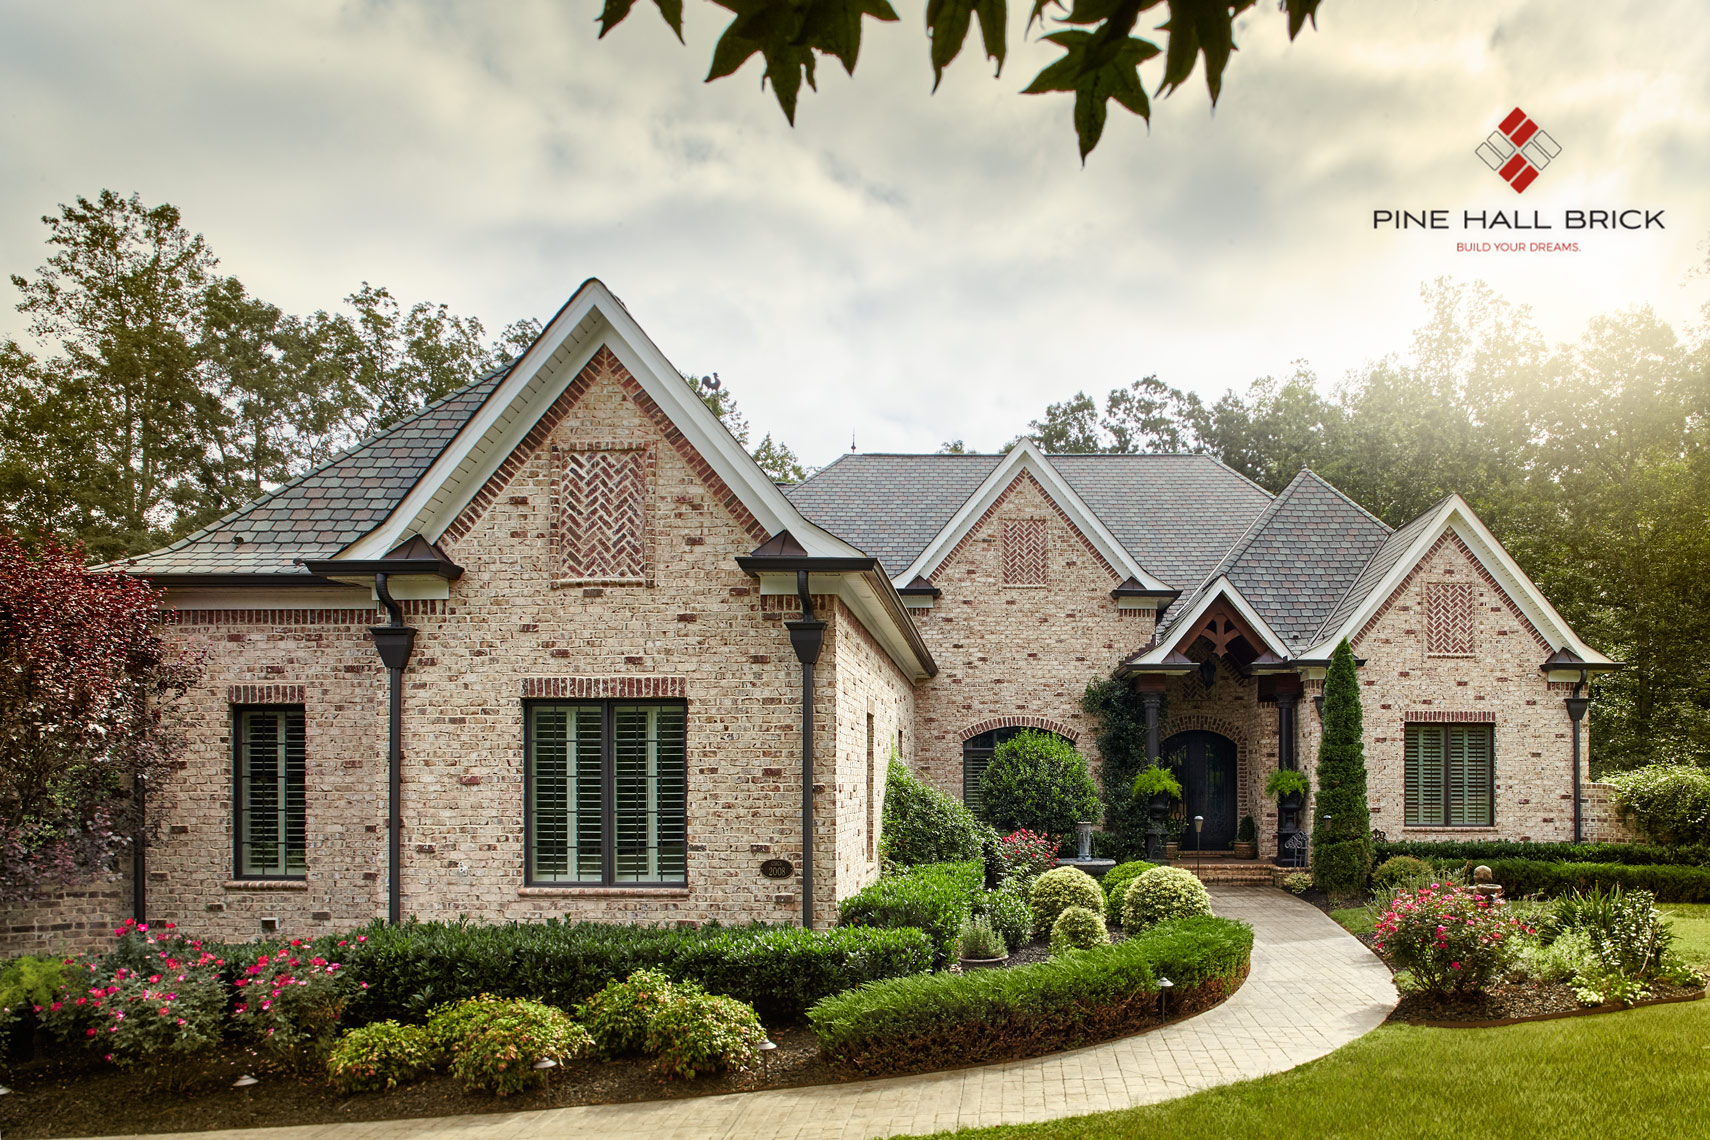 Pine-Hall-Brick-Italian-Villa-Estate